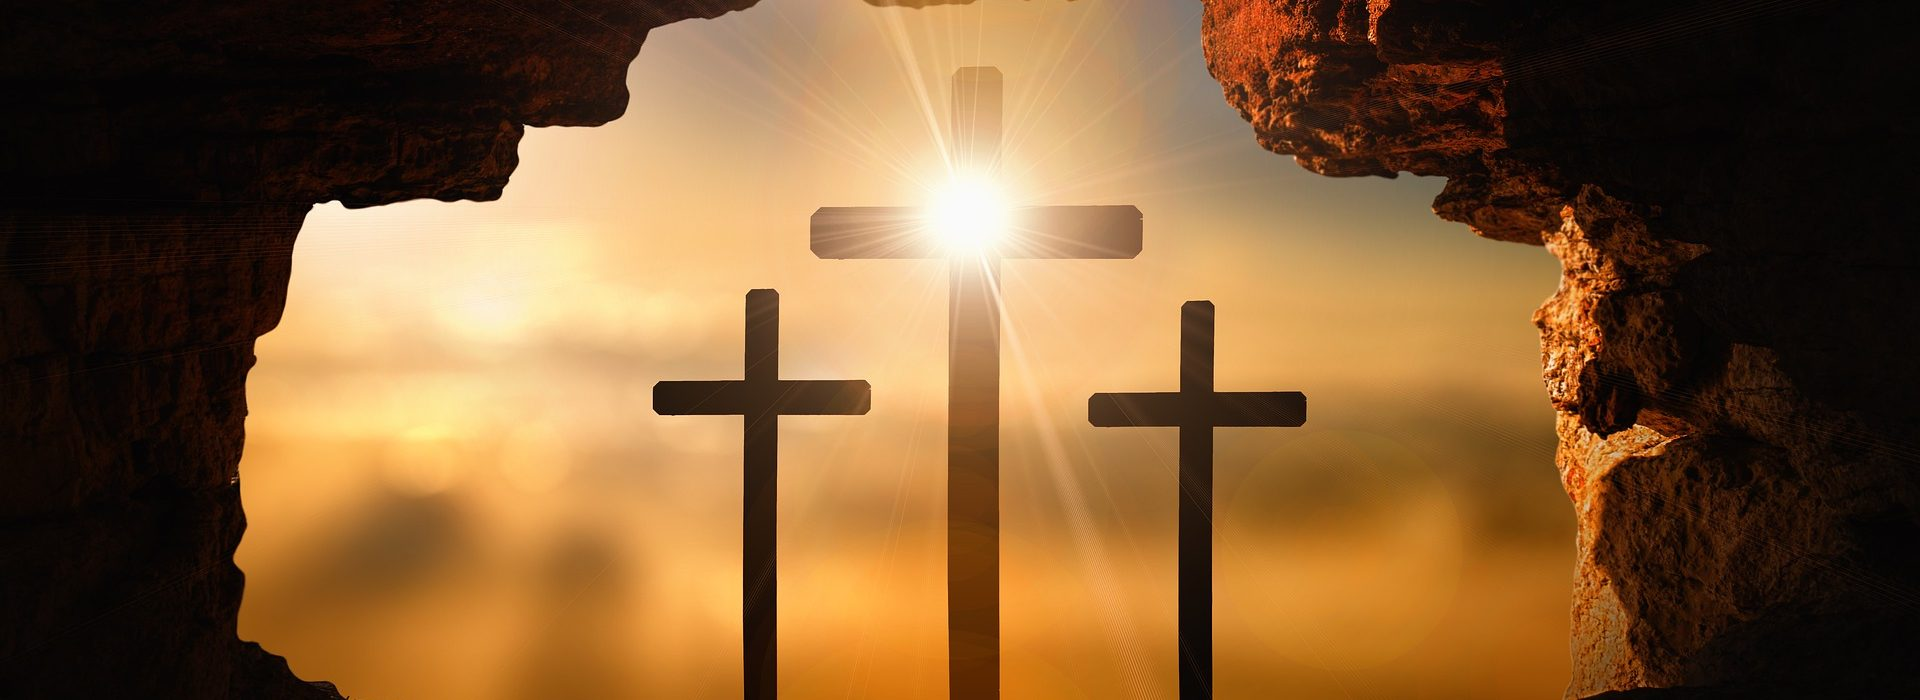 Jesus said unto her, I am the resurrection, and the life: he that believeth in me, though he were dead, yet shall he live